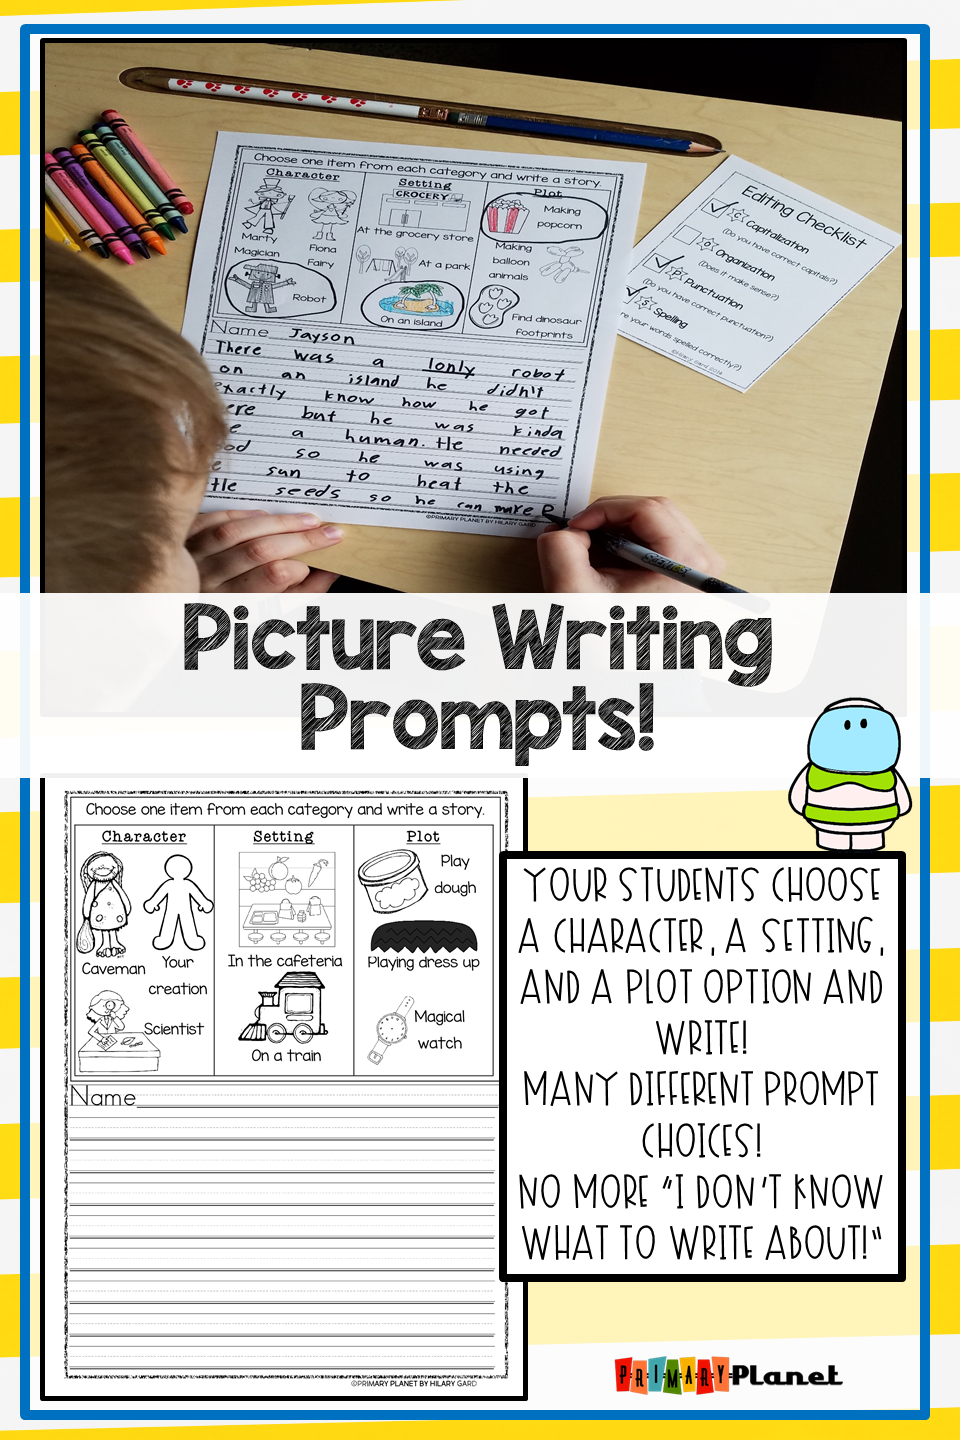 These Fun Imaginative Picture Writing Prompts For Elementary Students Are Prin Elementary Writing Prompts Picture Writing Prompts Kindergarten Writing Prompts [ 1440 x 960 Pixel ]